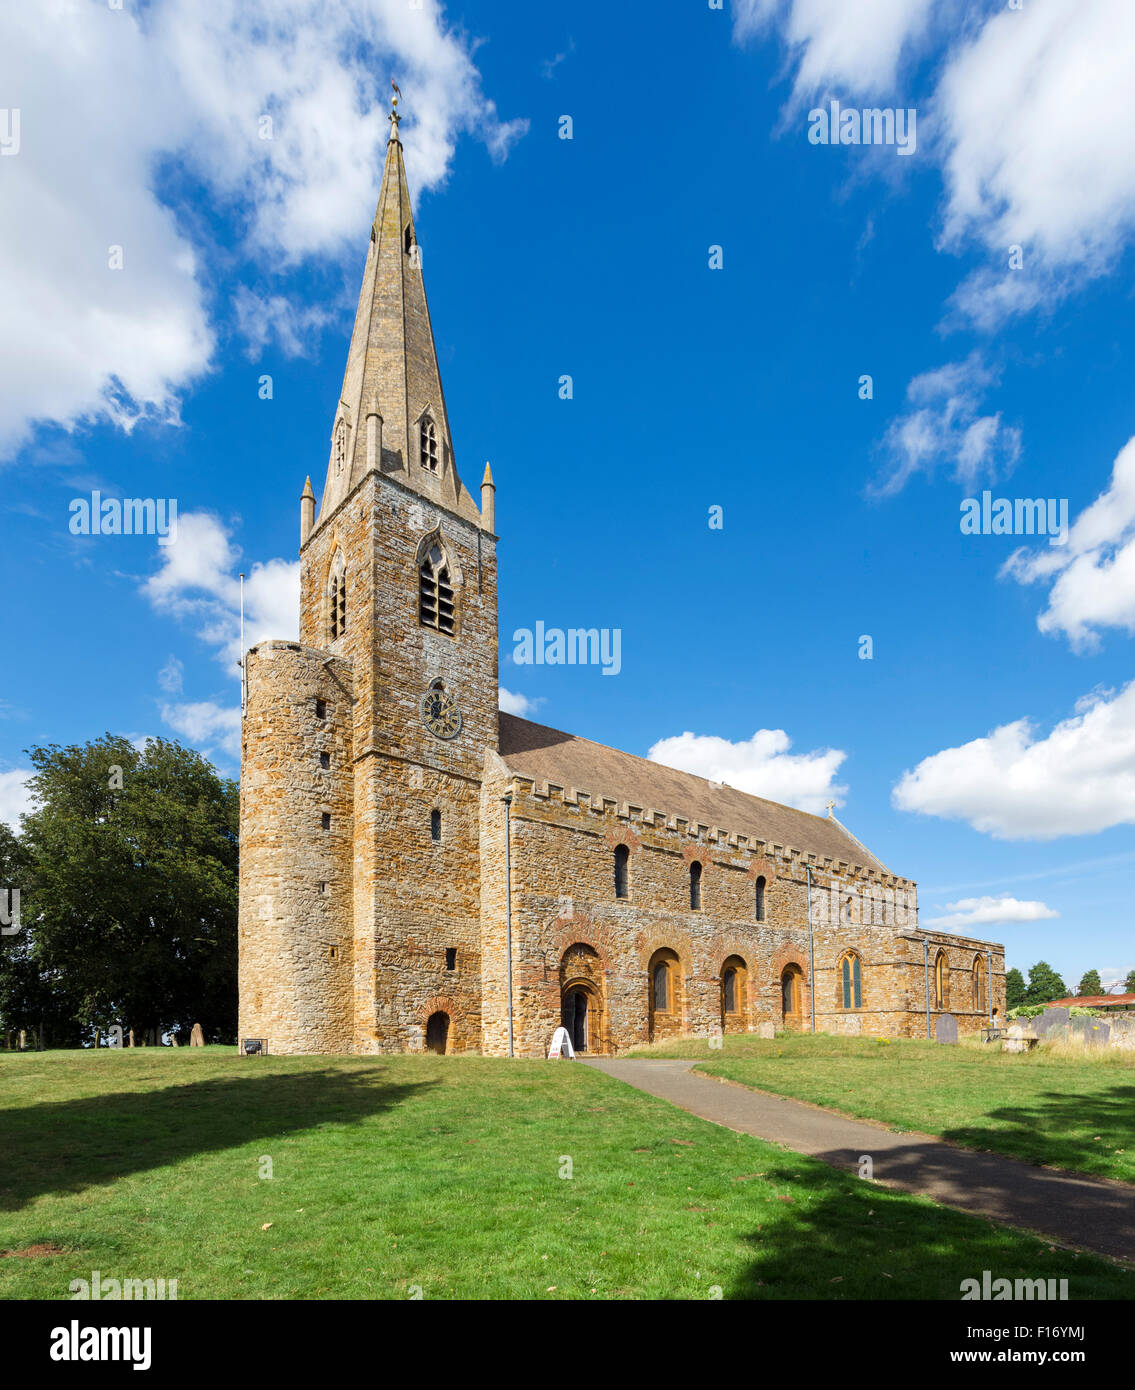 All Saints Church, one of the oldest Anglo-Saxon churches in the country dating from around 690AD, Brixworth, Northants, - Stock Image